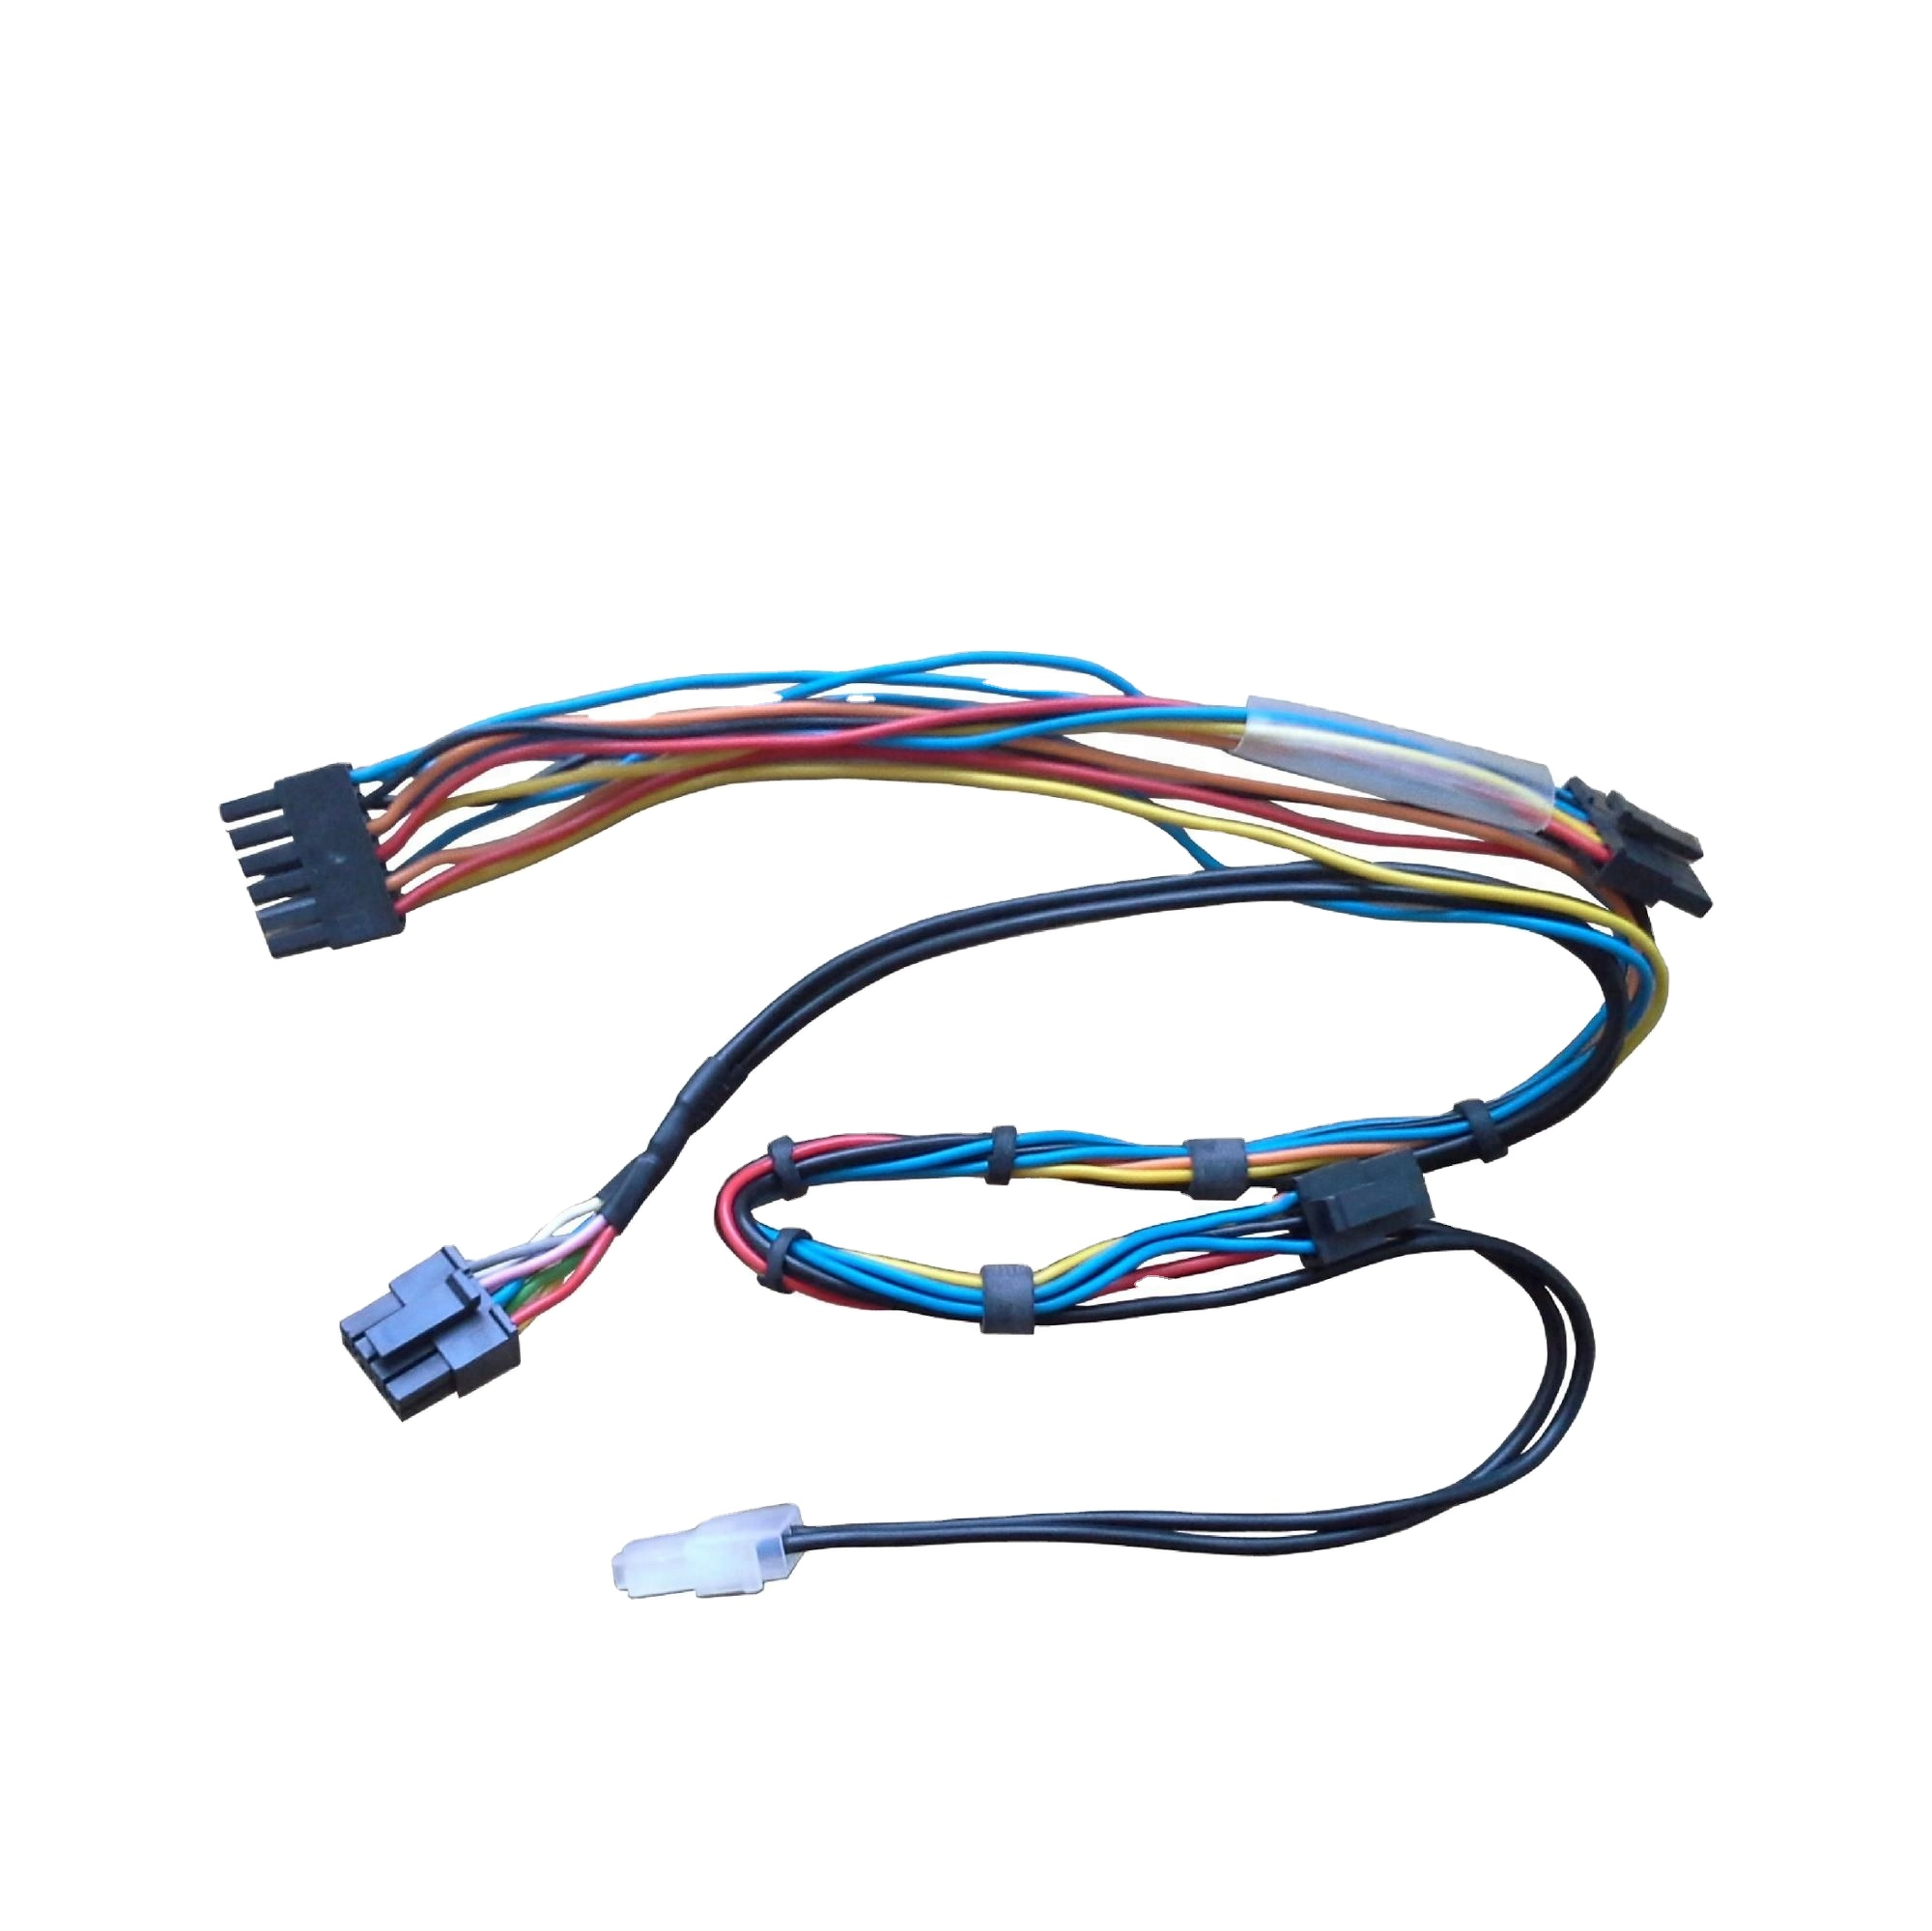 High Quality Long Duration Time Hs Code 40 For Wire Harness   Buy  Wire Harness,Molex Wire Harness,40 40 Wire Harness Product on ...